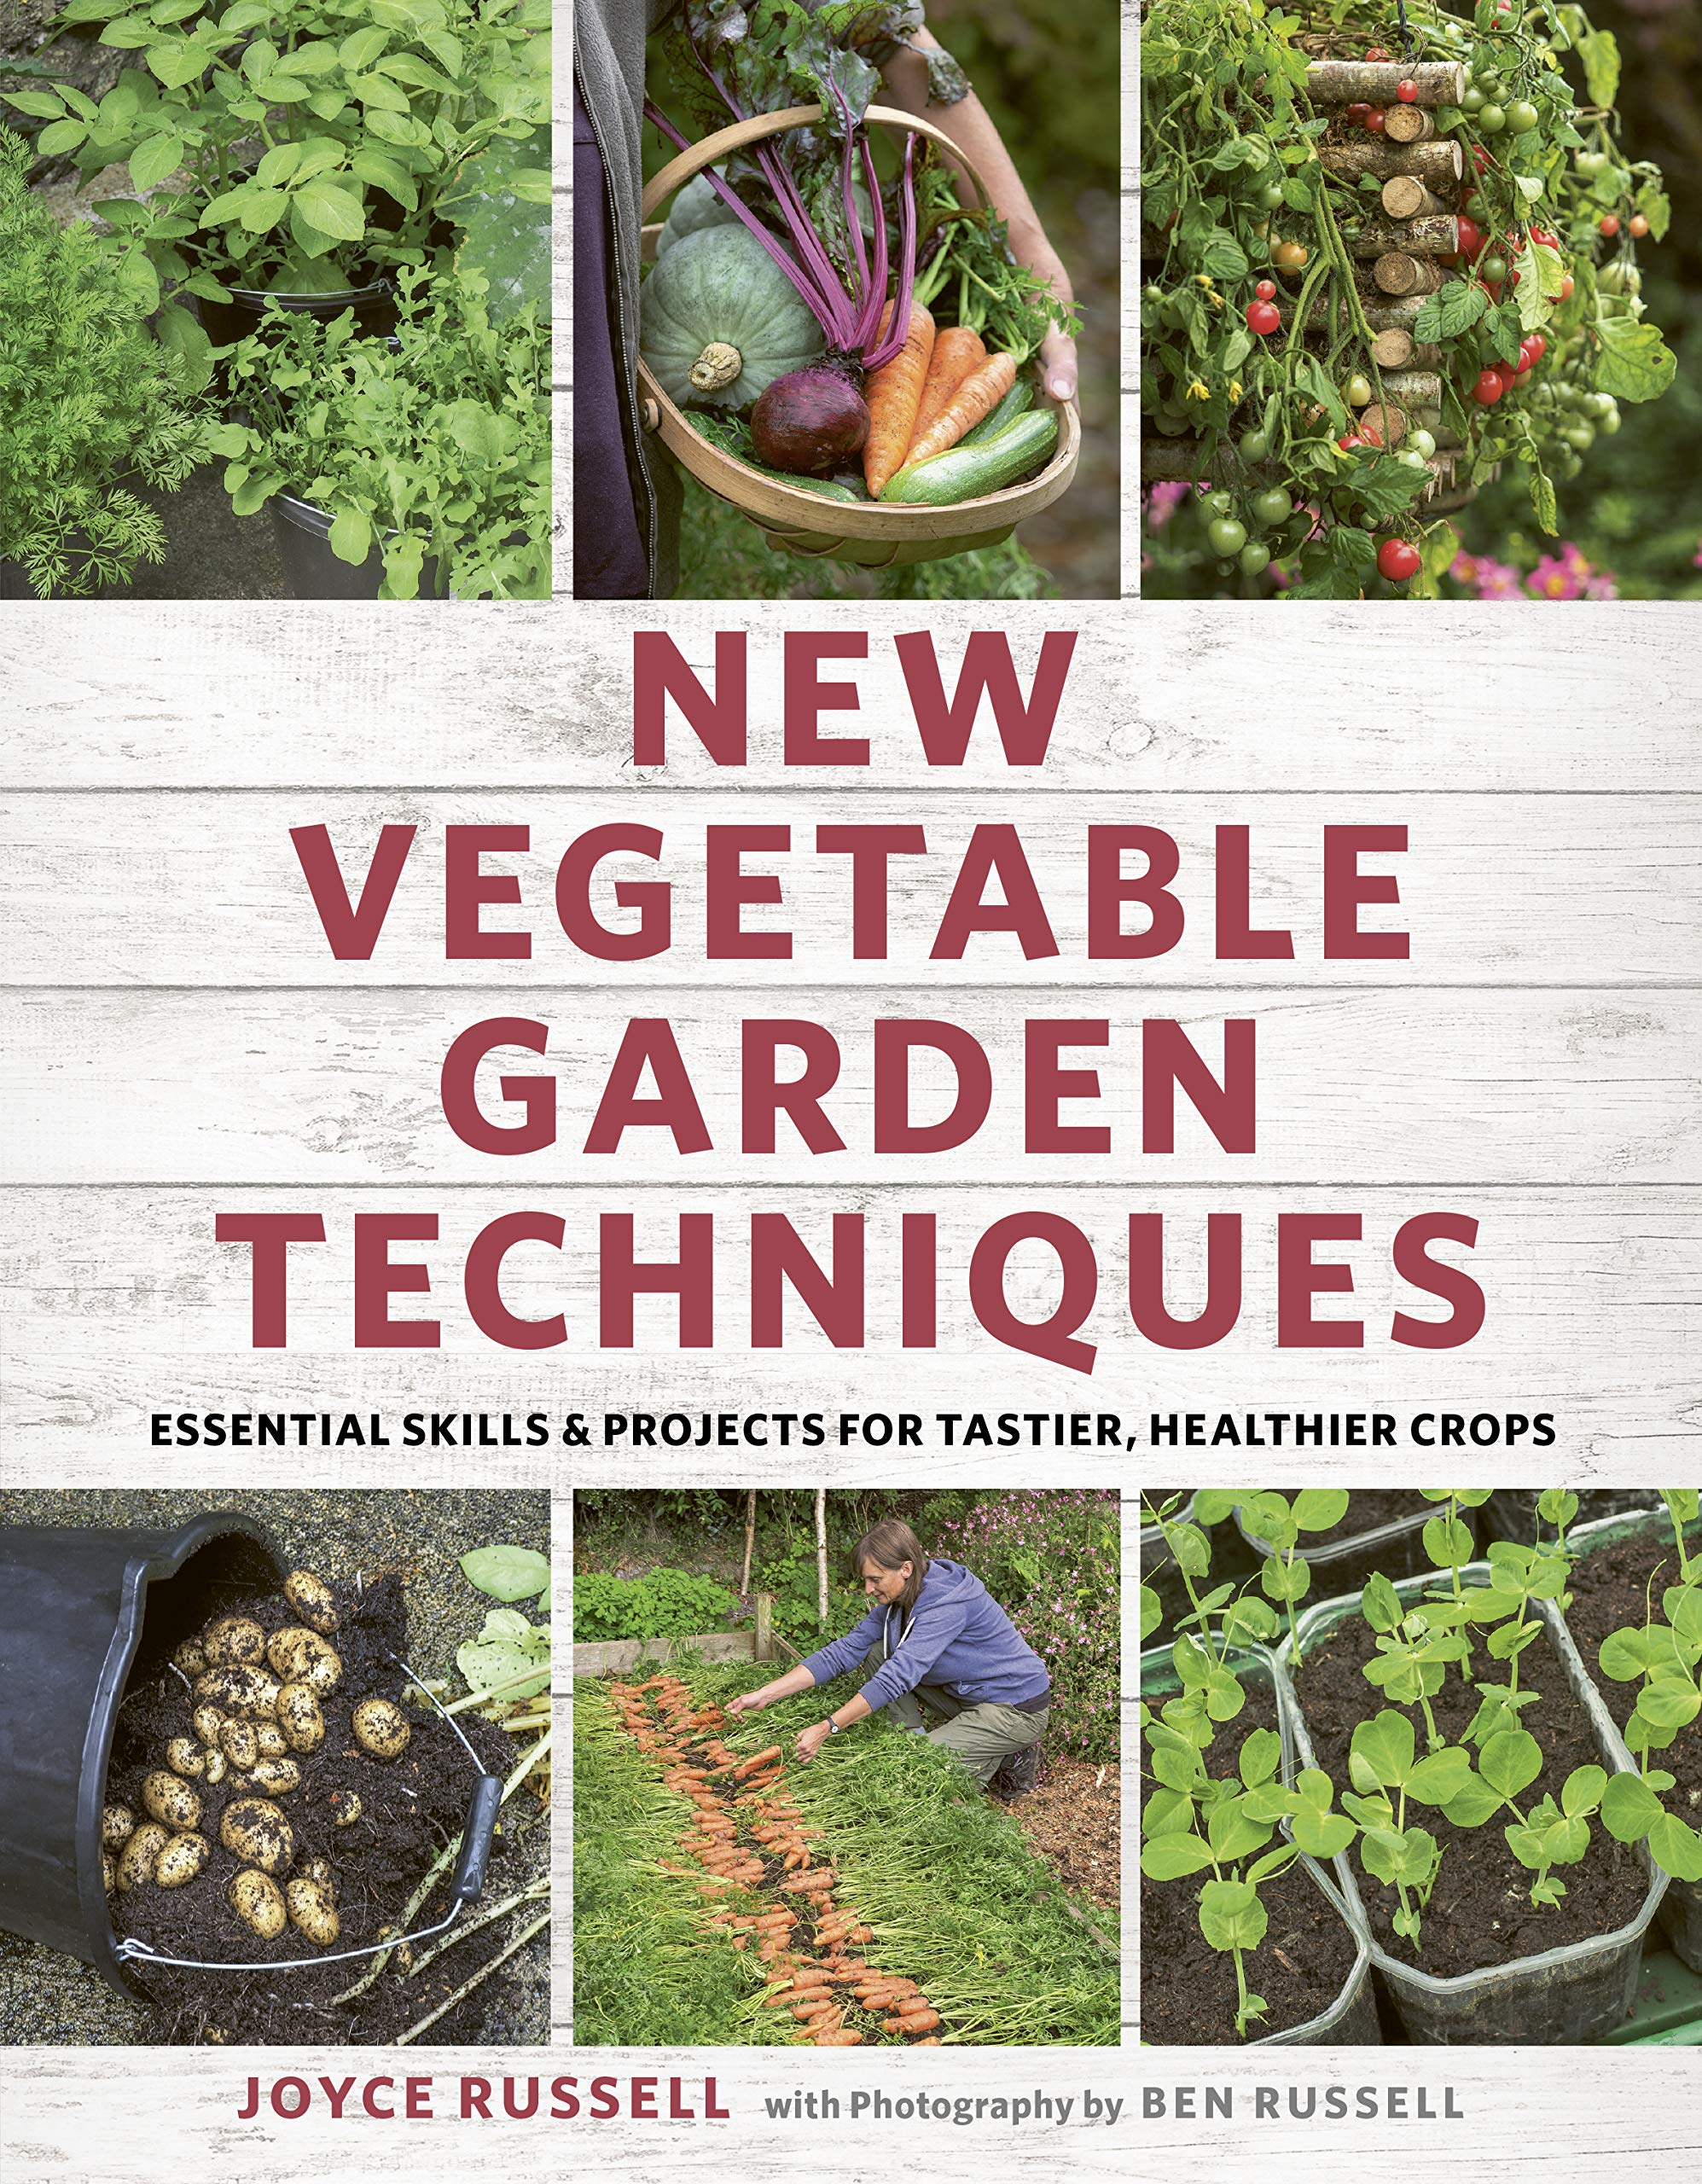 New Vegetable Garden Techniques Essential Skills And Projects For